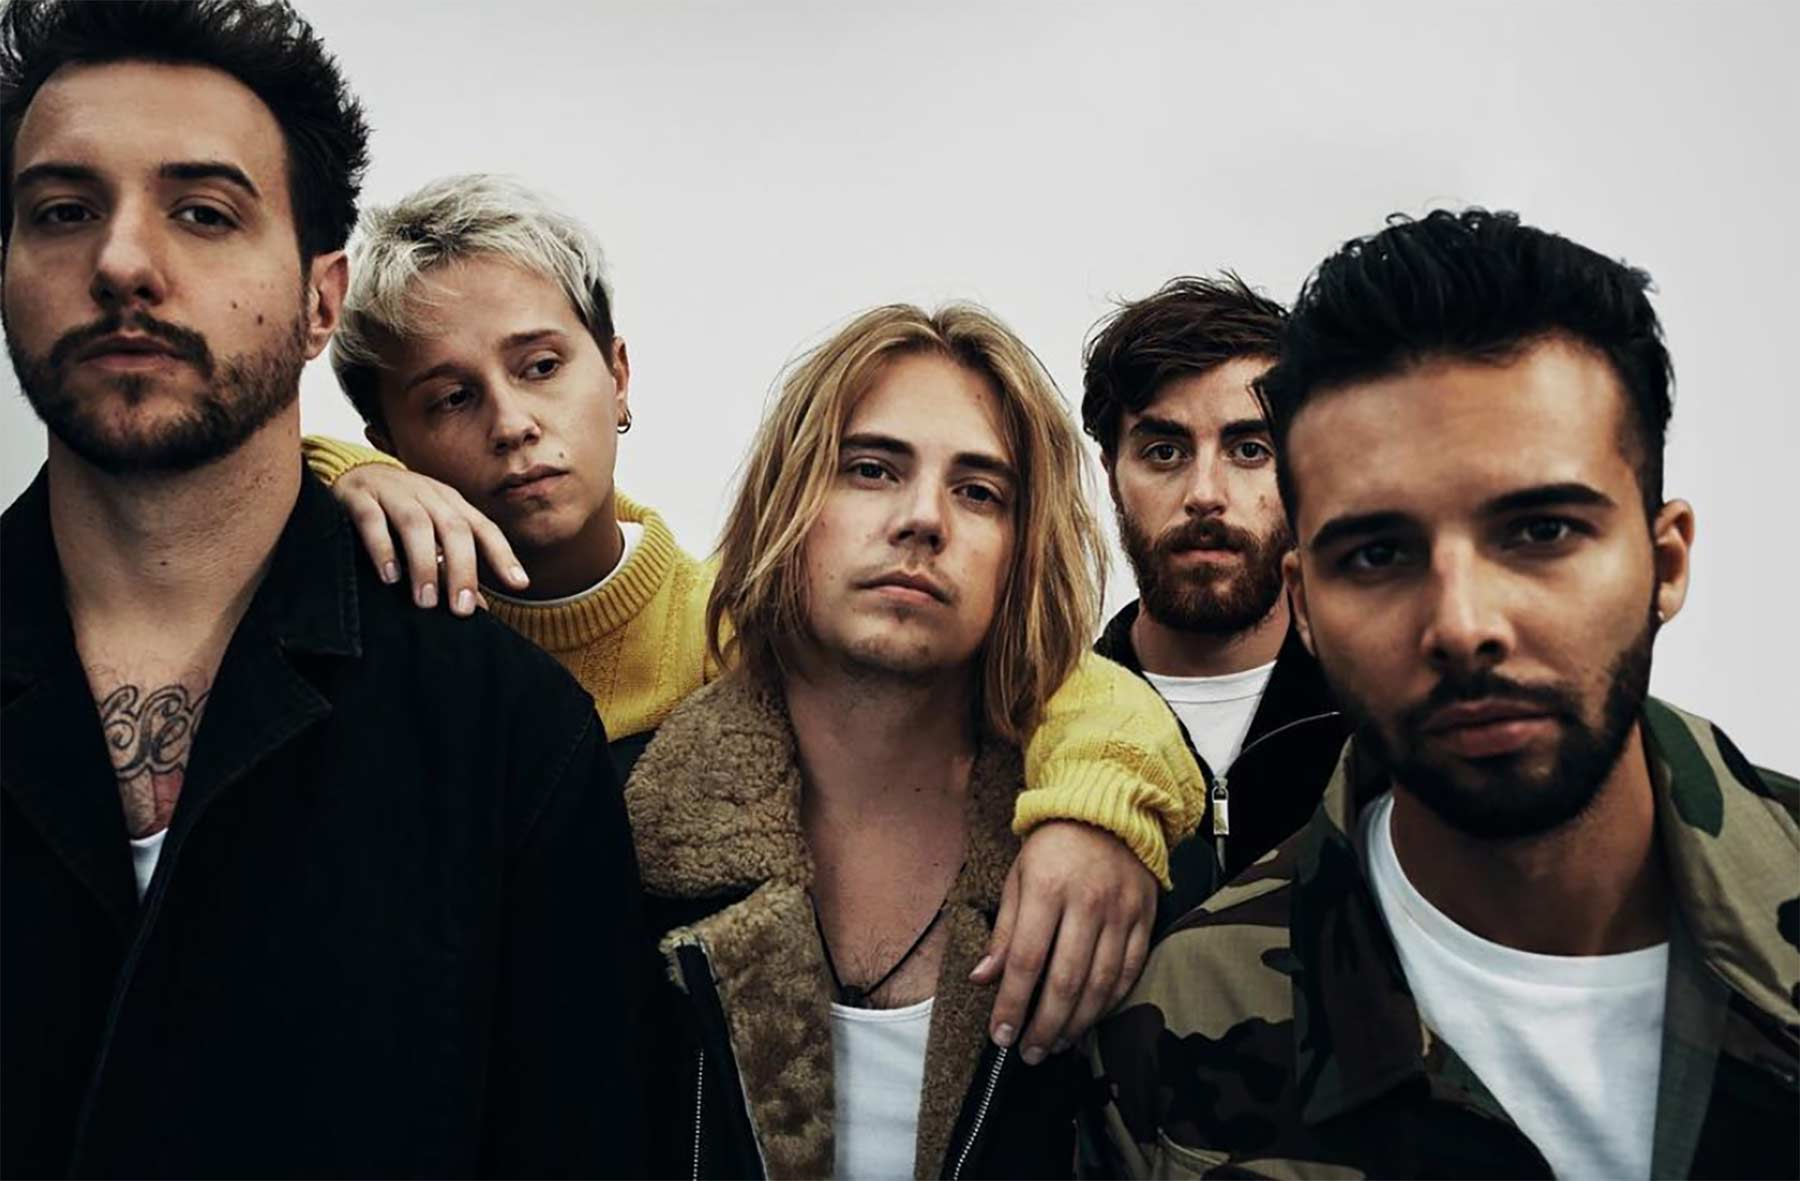 LwDn präsentiert: Nothing But Thieves Tour 2018 nothing-but-thieves-tourdaten-2018-live